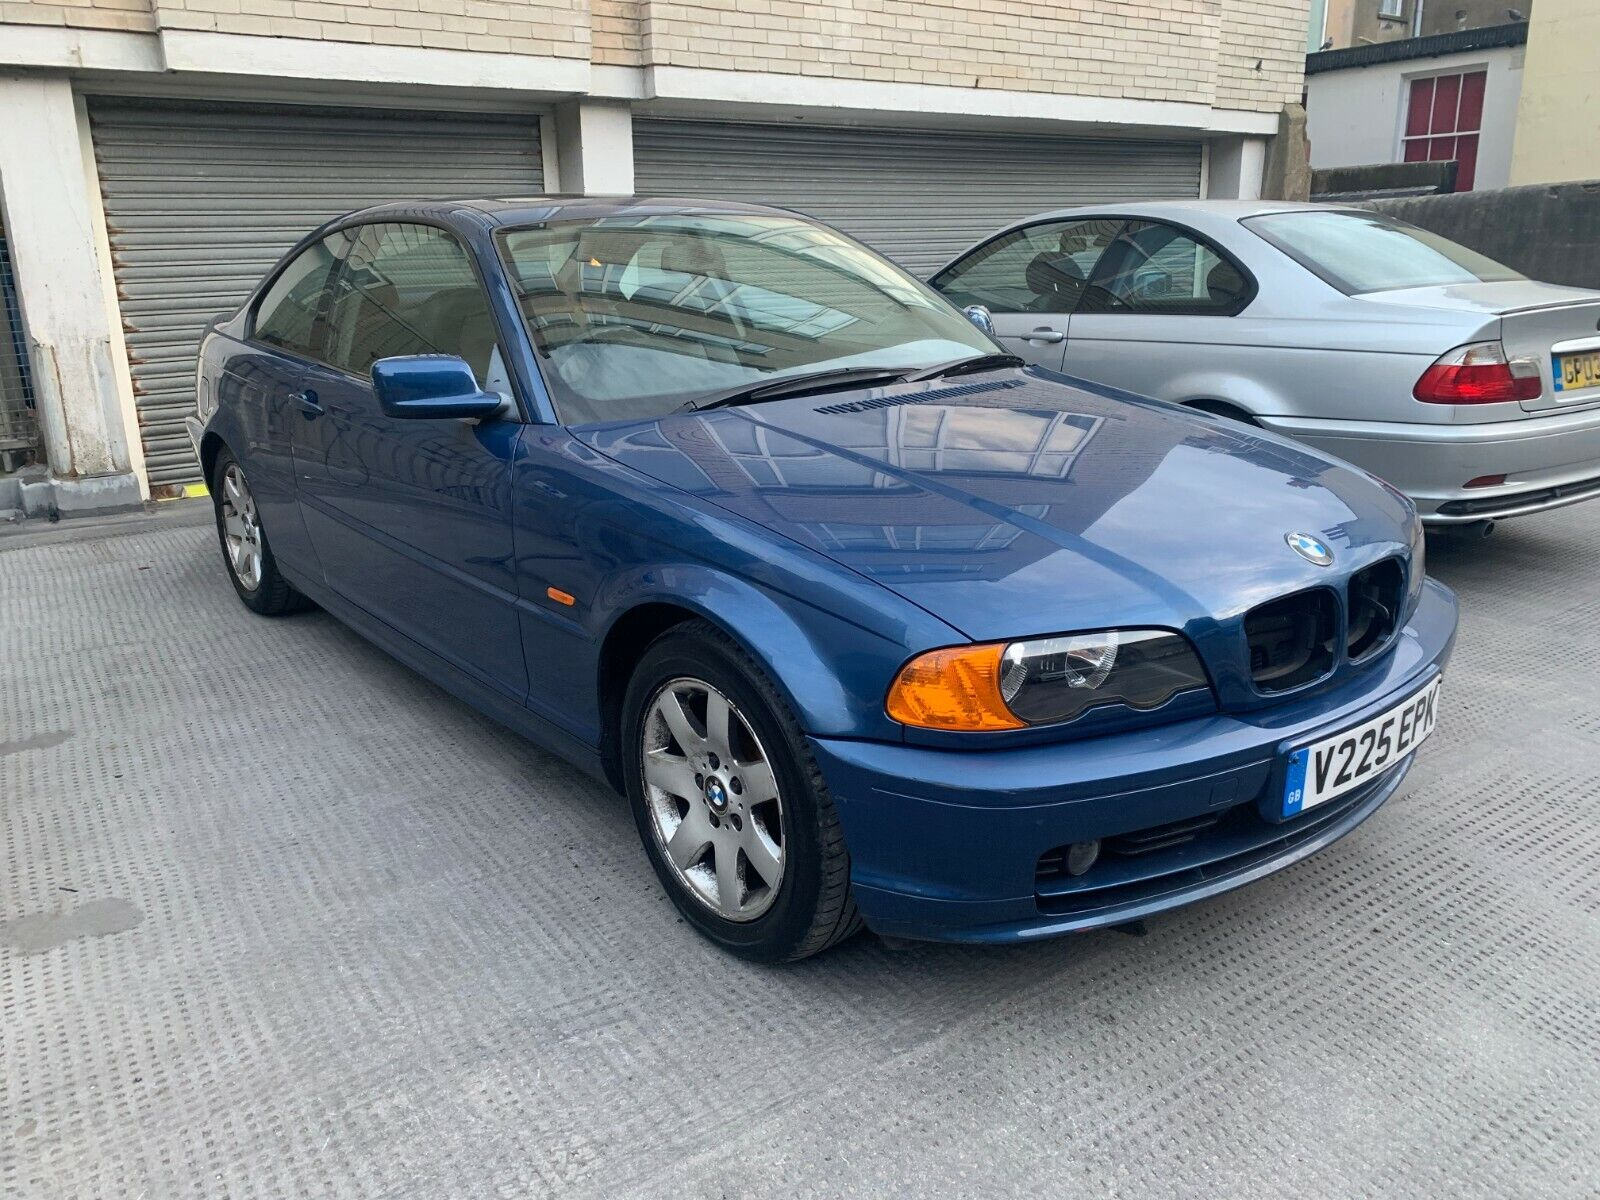 Low-millage-68k-BMW-3-Series-318-Coupe-Blue-Petrol-Automatic